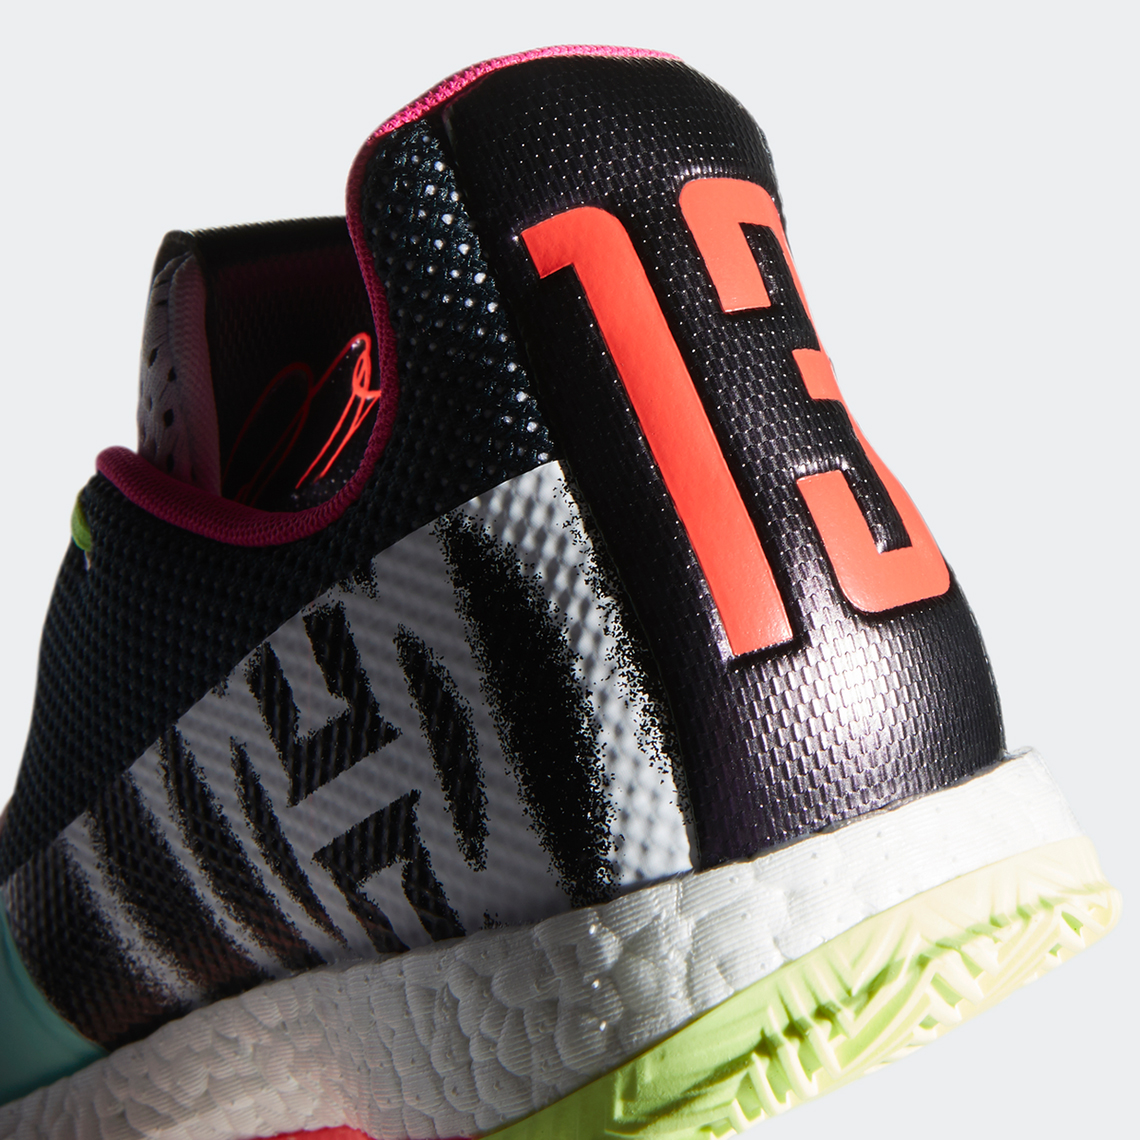 James Harden Shoes 2019: Adidas Harden Vol. 3 Different Breed Release Info